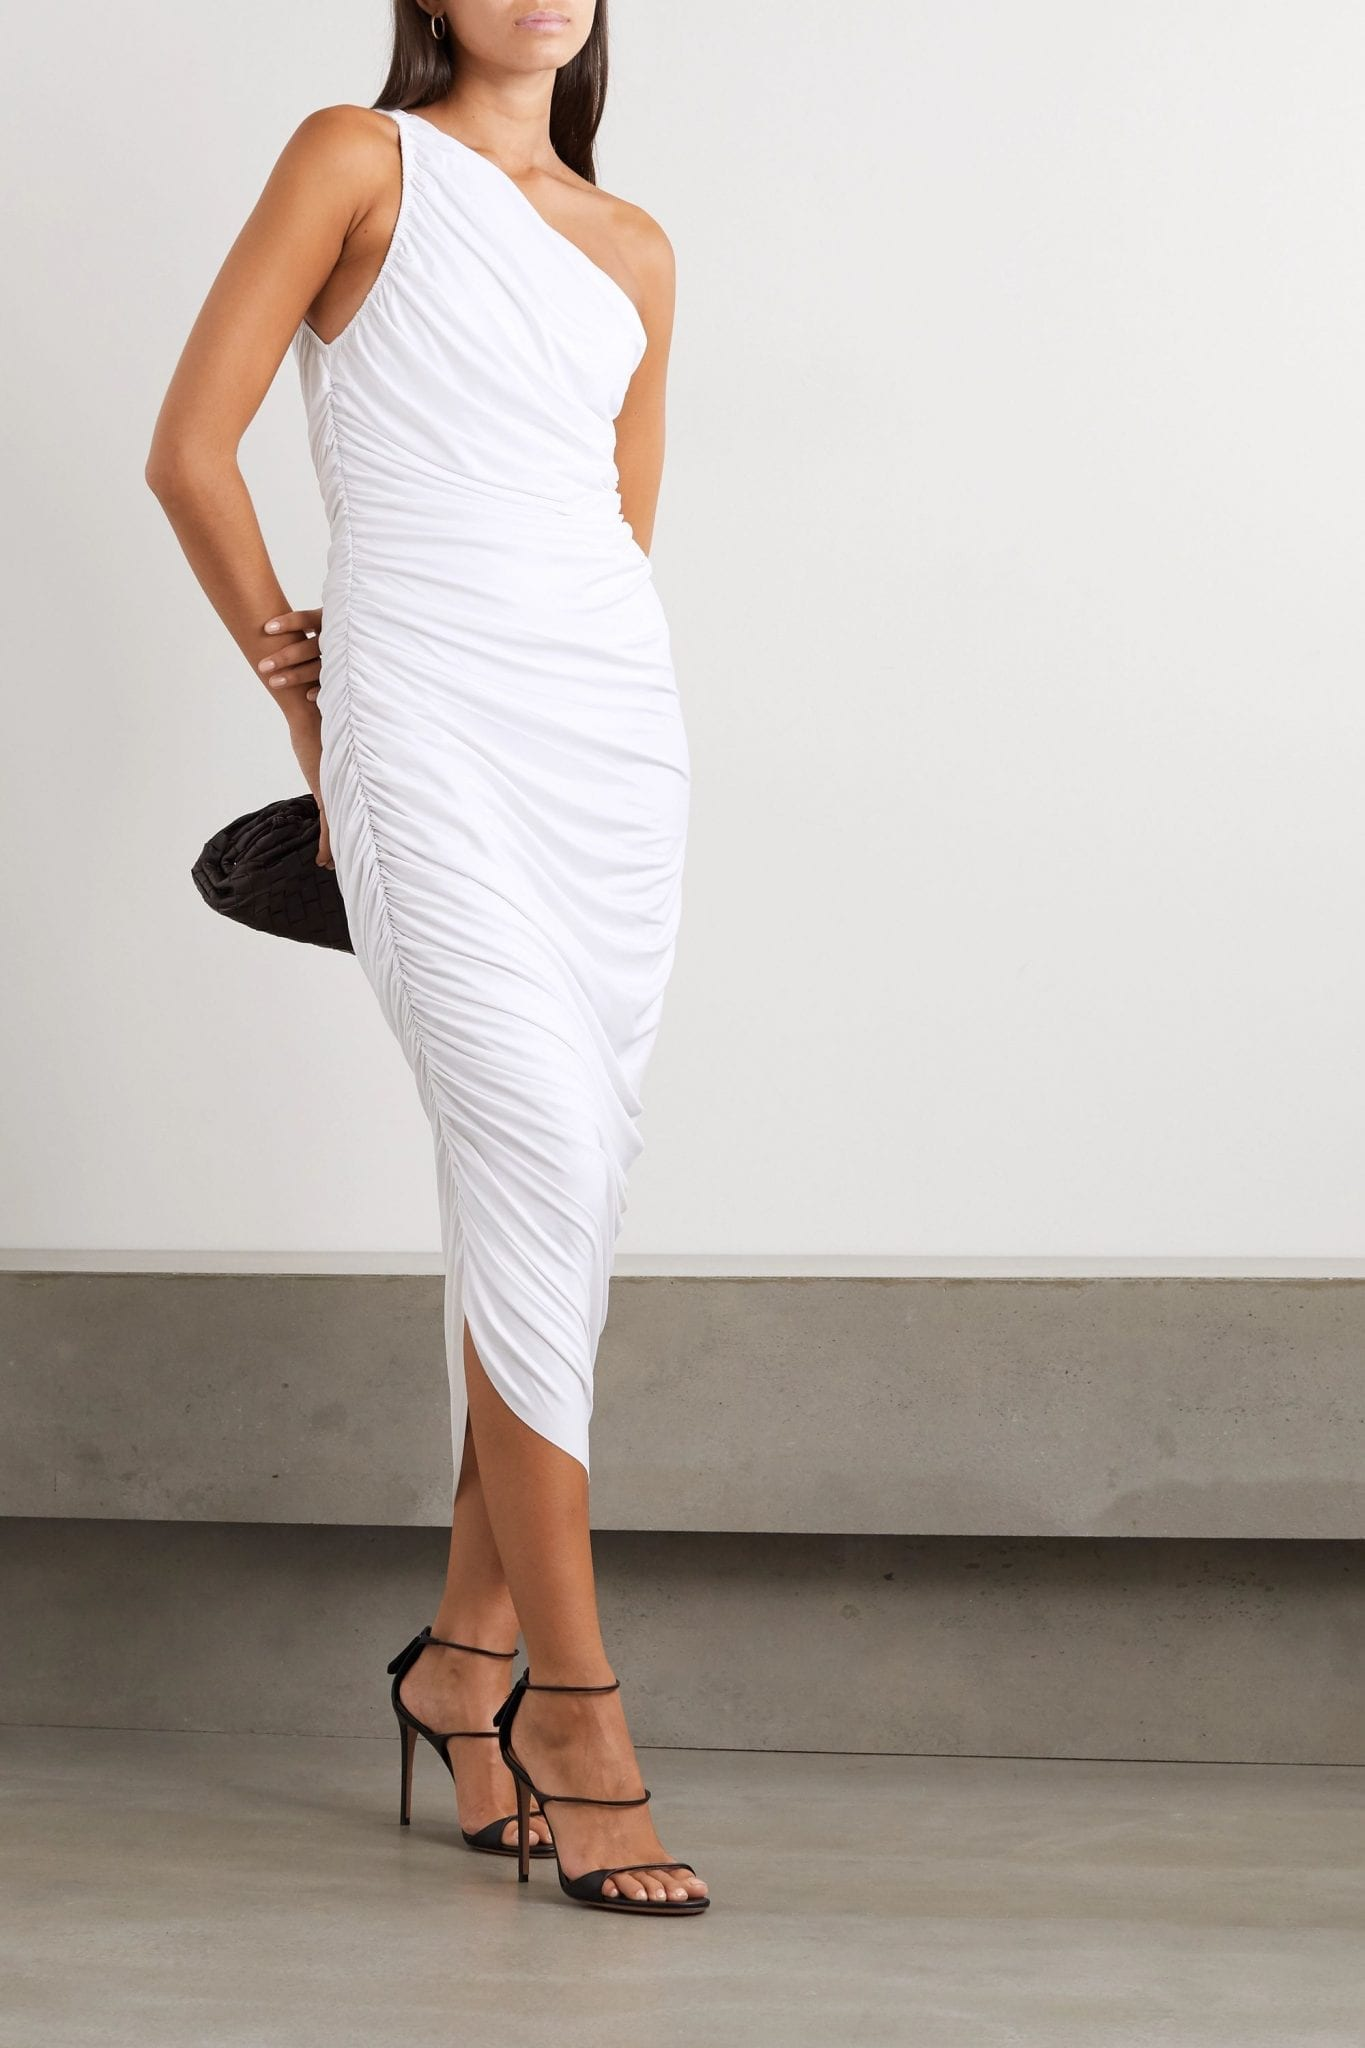 NORMA KAMALI Diana One-shoulder Ruched Stretch-jersey Dress